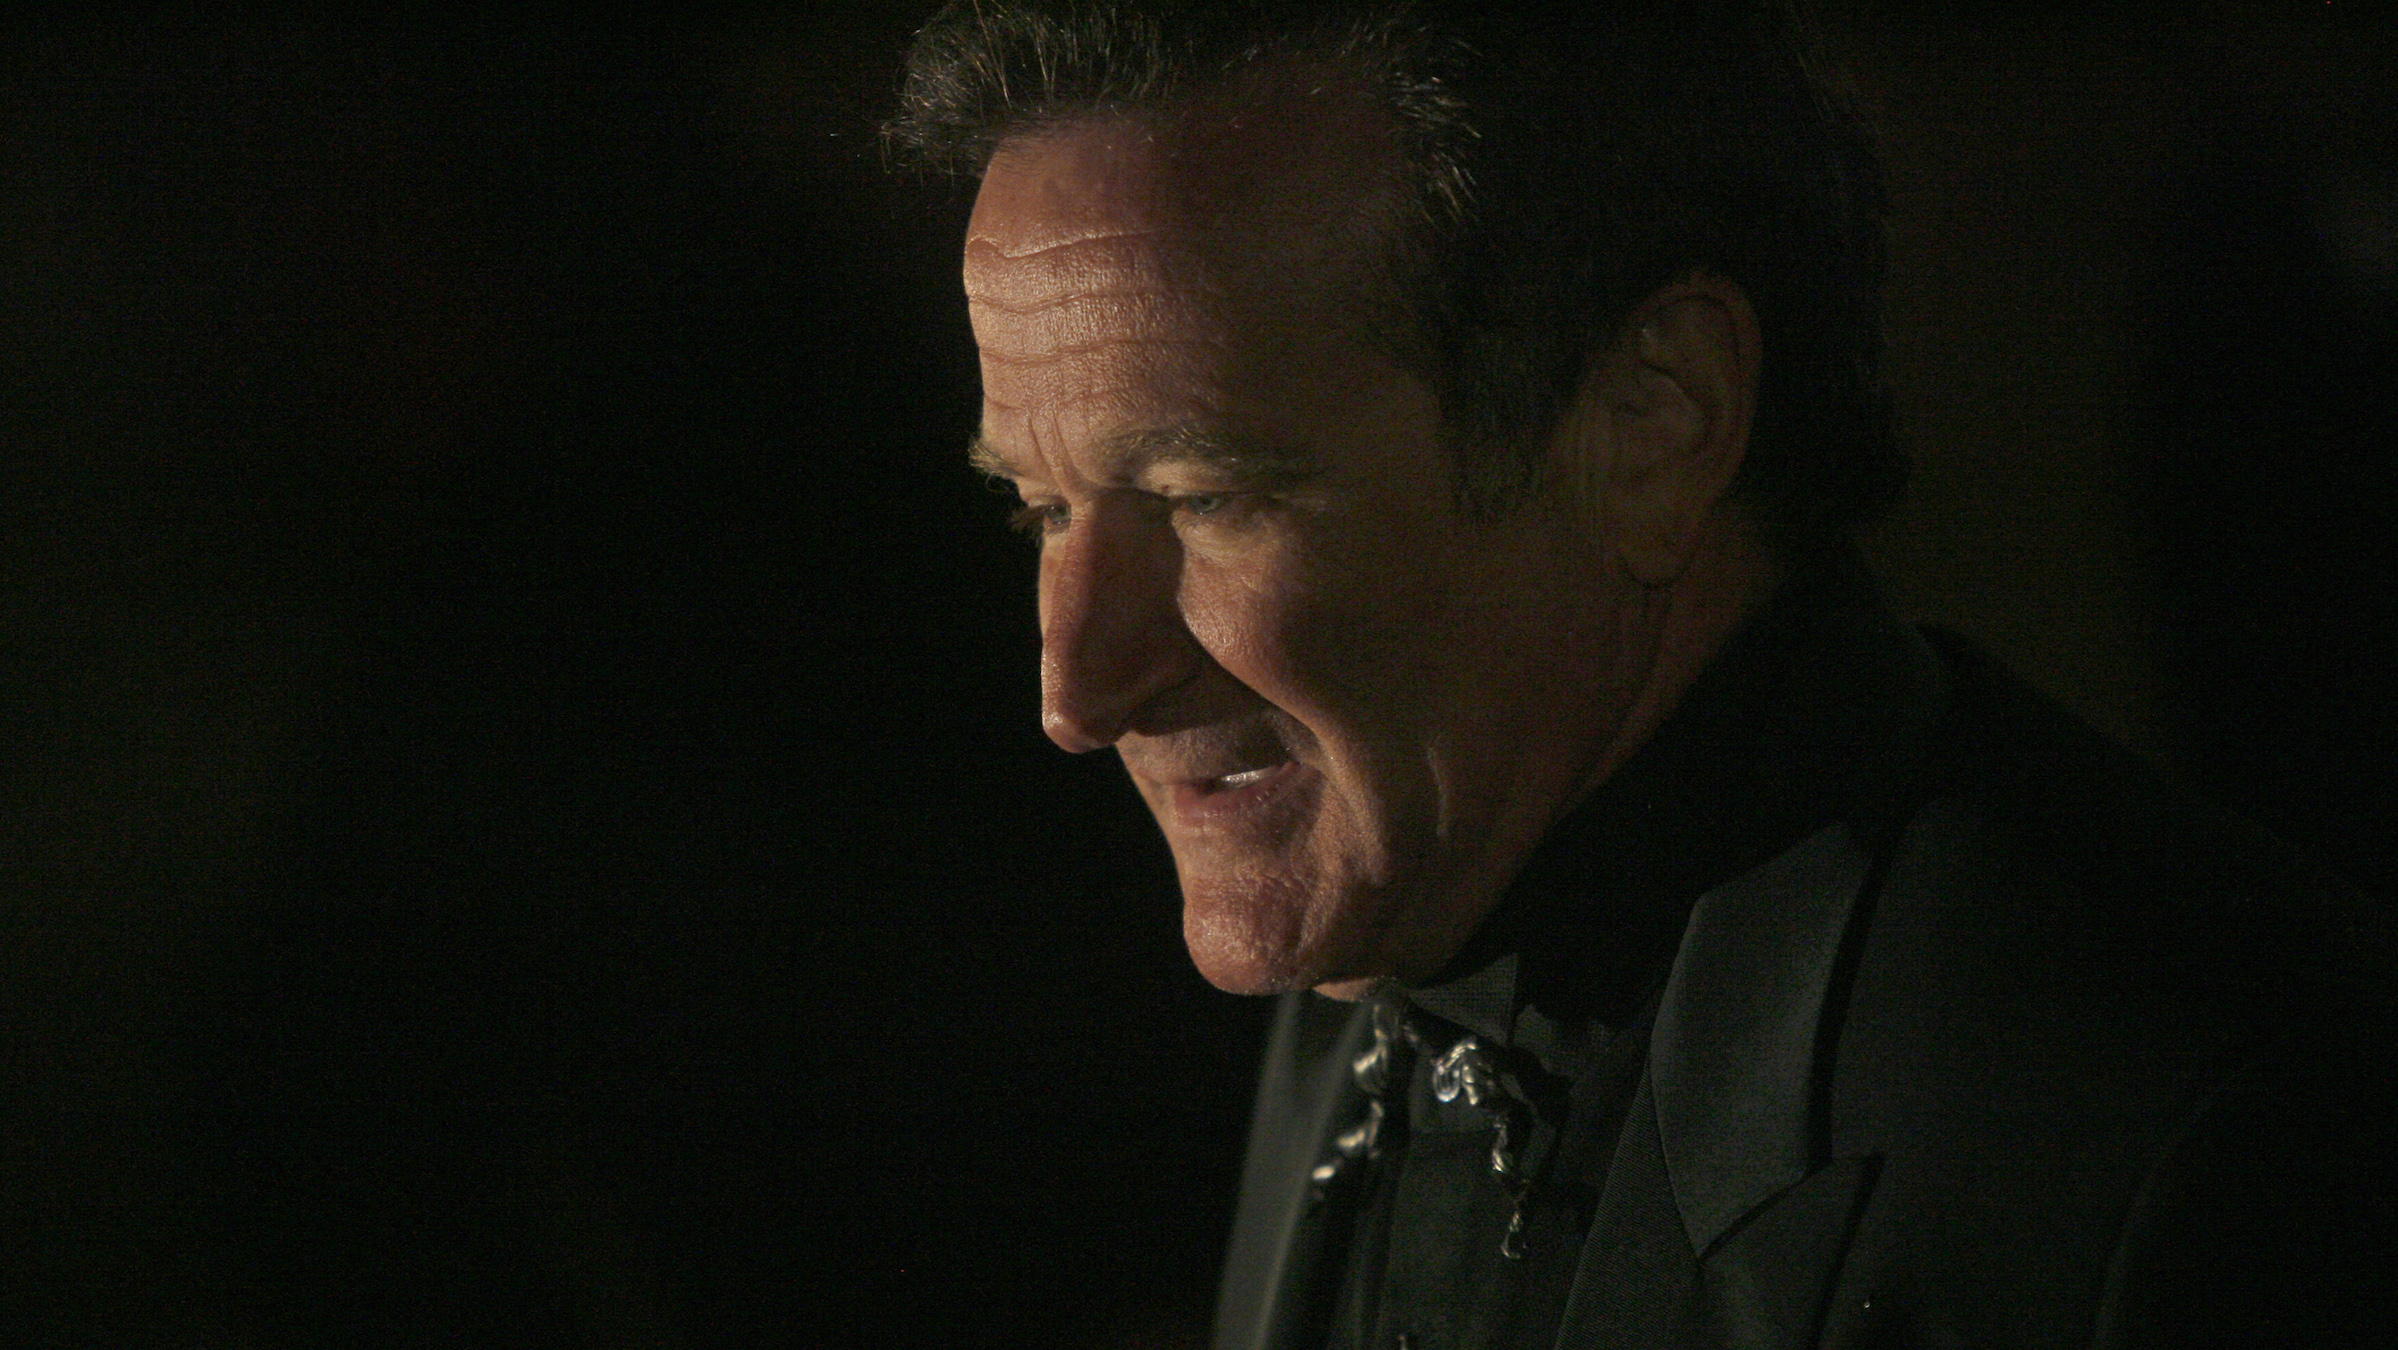 Actor Robin Williams arrives at singer-songwriter Elton John's 60th birthday party in New York March 24, 2007. REUTERS/Eric Thayer (UNITED STATES) - RTR1NVT6